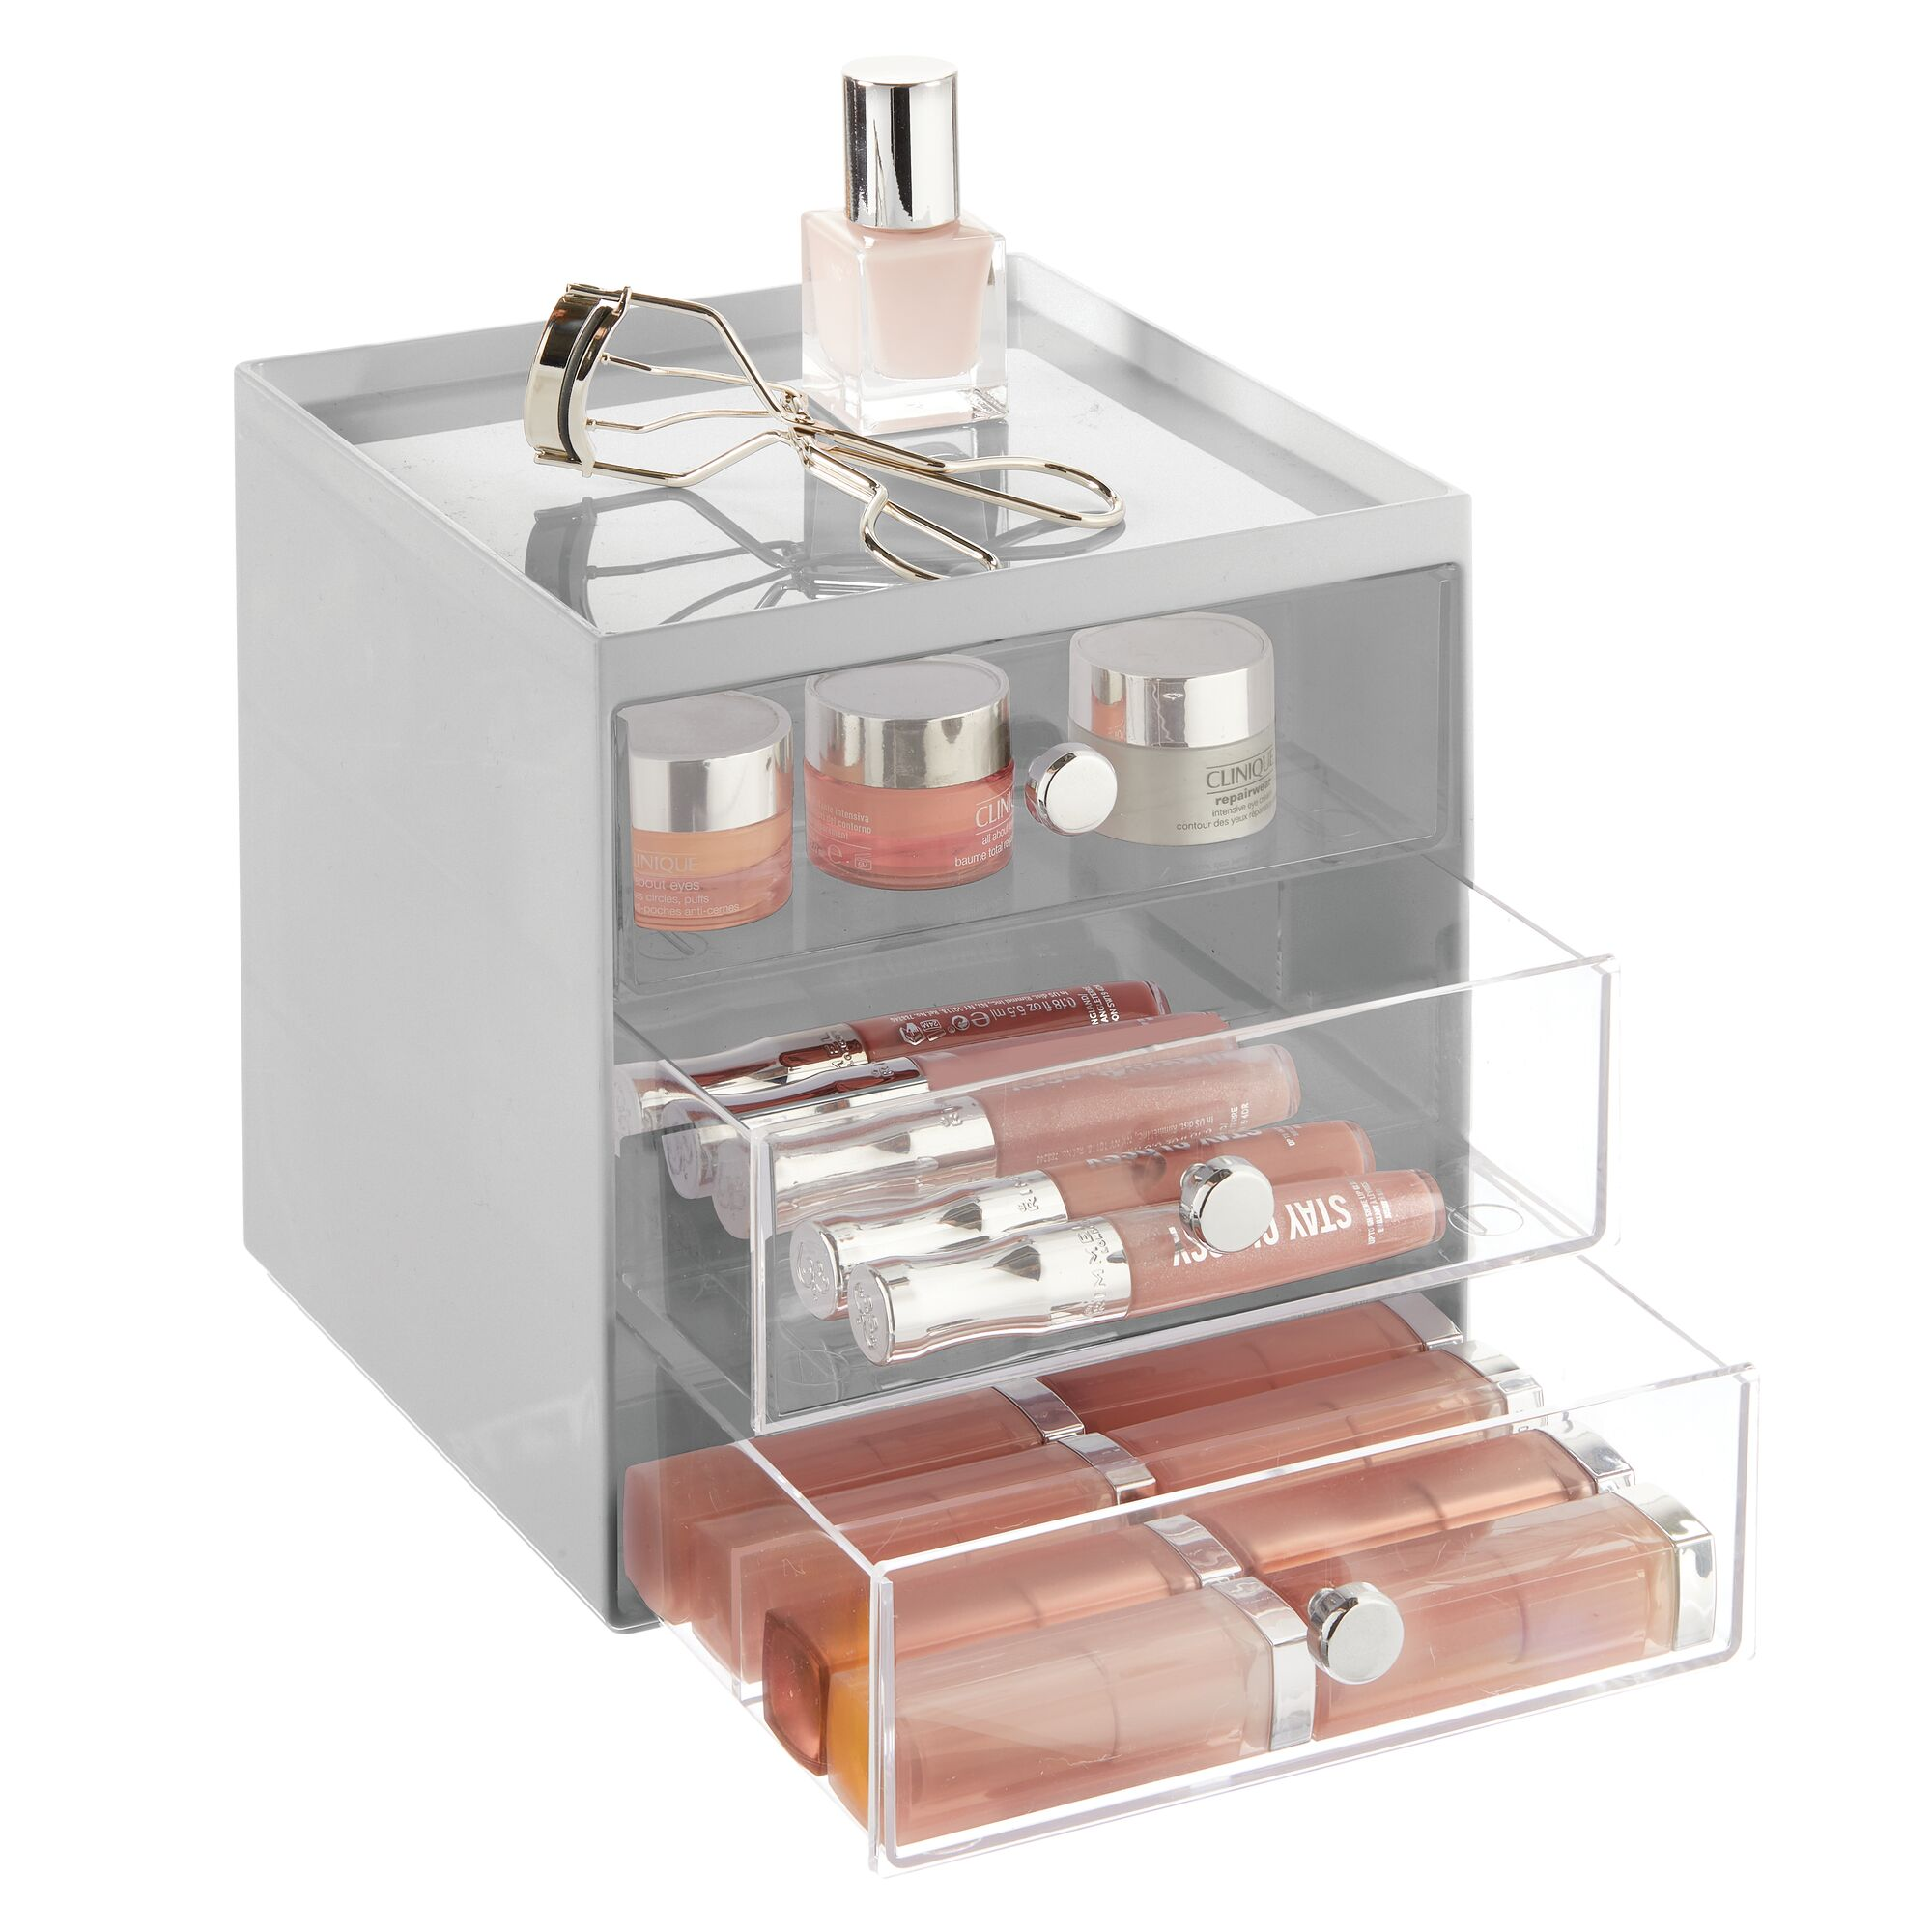 mDesign-Plastic-Makeup-Storage-Organizer-Cube-3-Drawers thumbnail 41